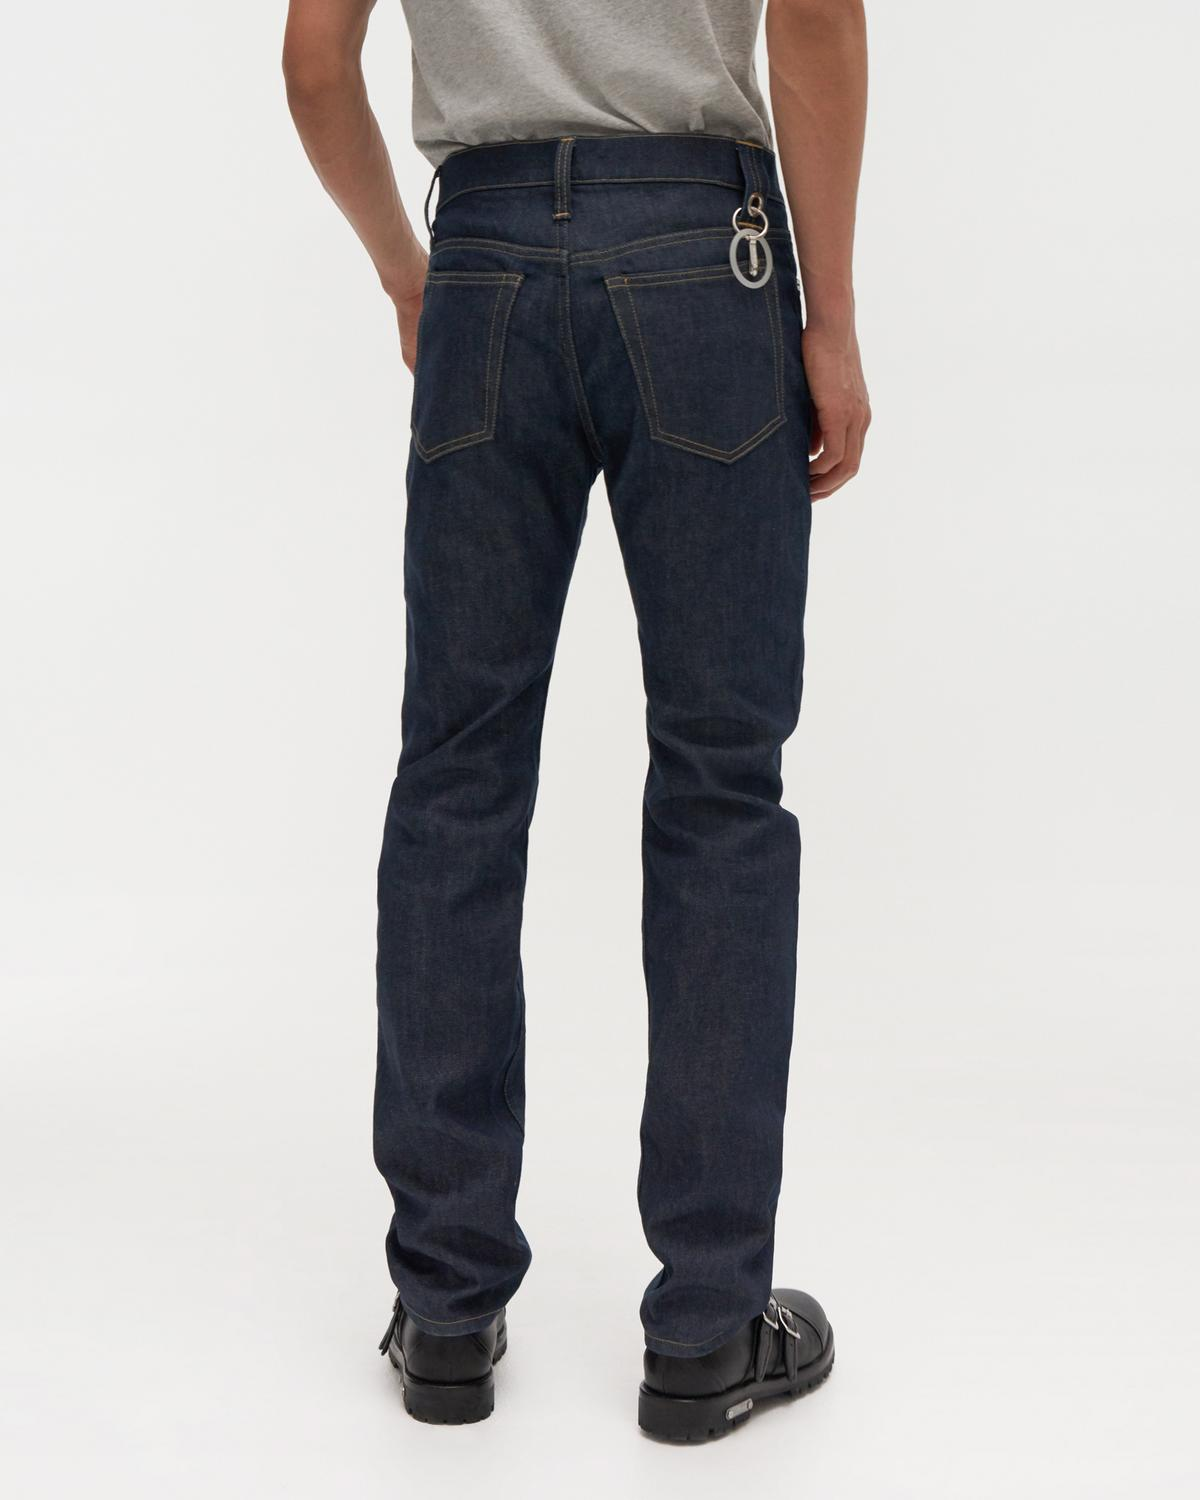 Glowcore Slim Straight Jean